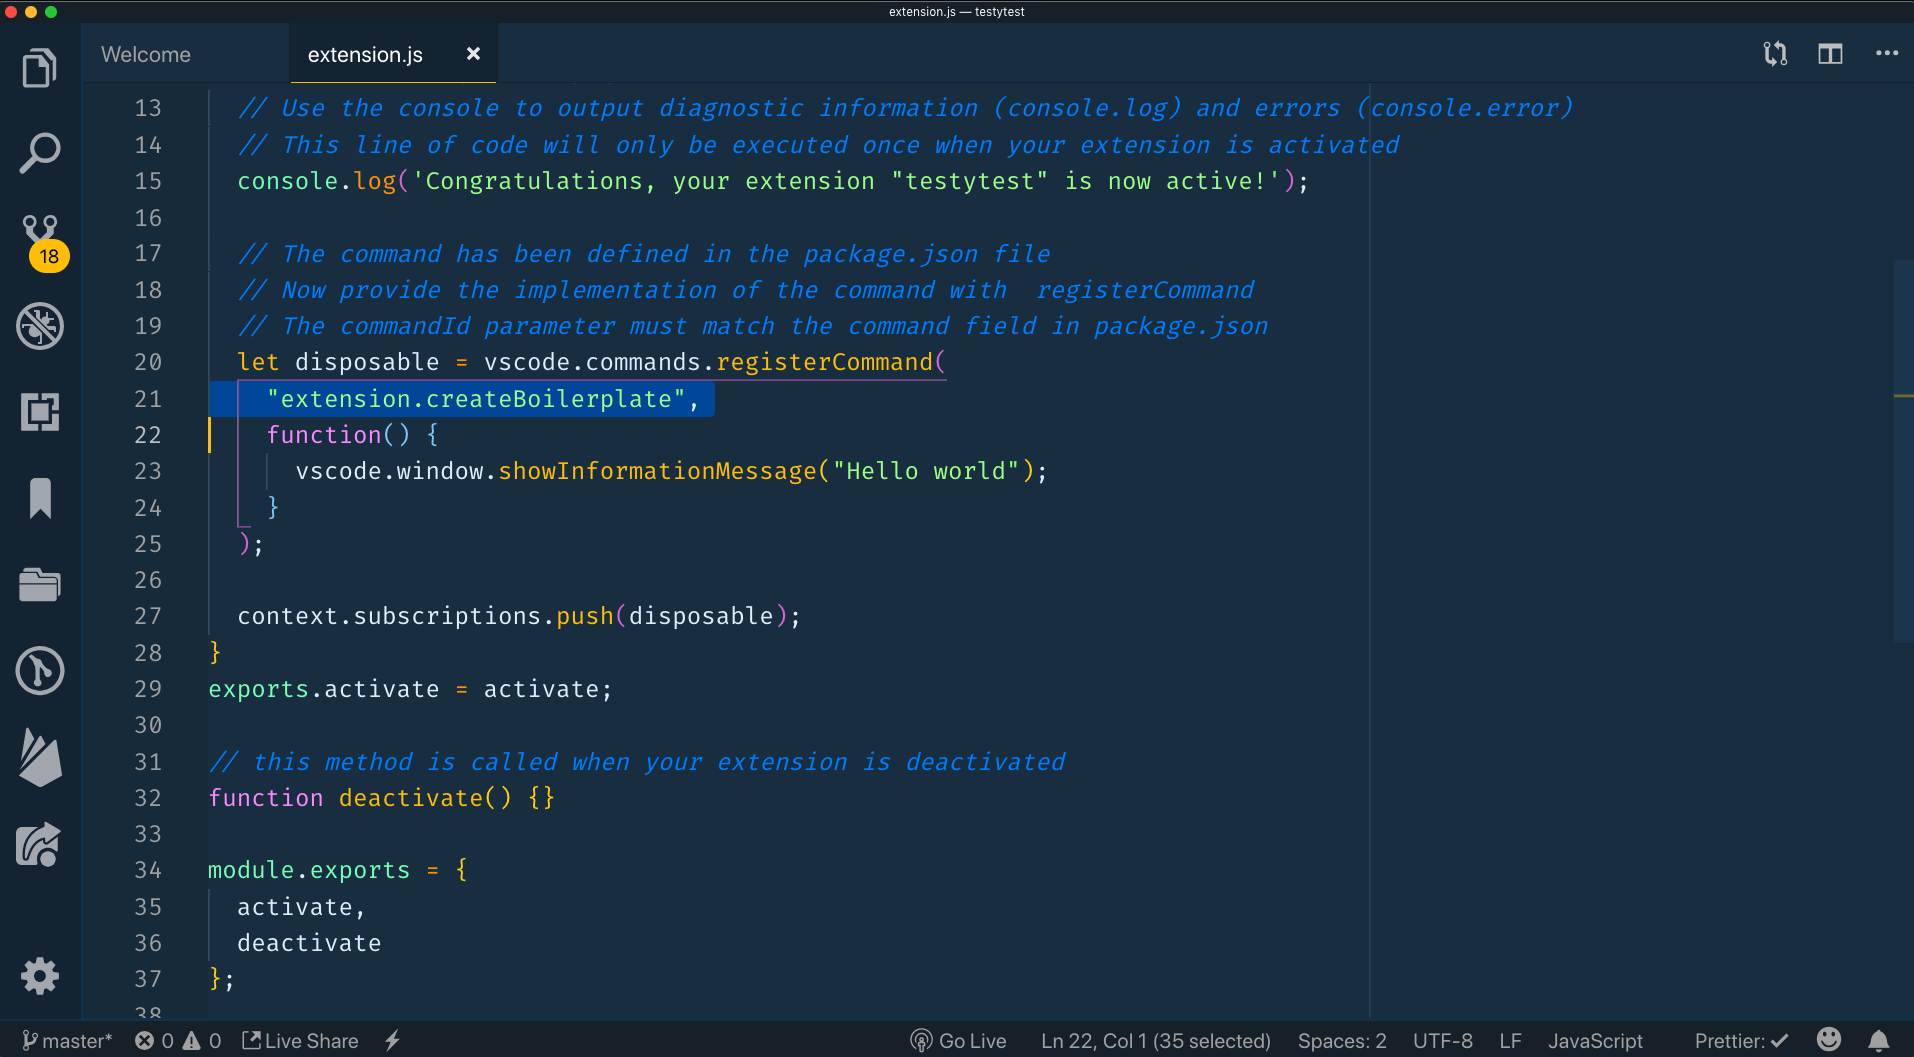 in extension.js changing the command from extension.helloworld to extension.createBoilerplate